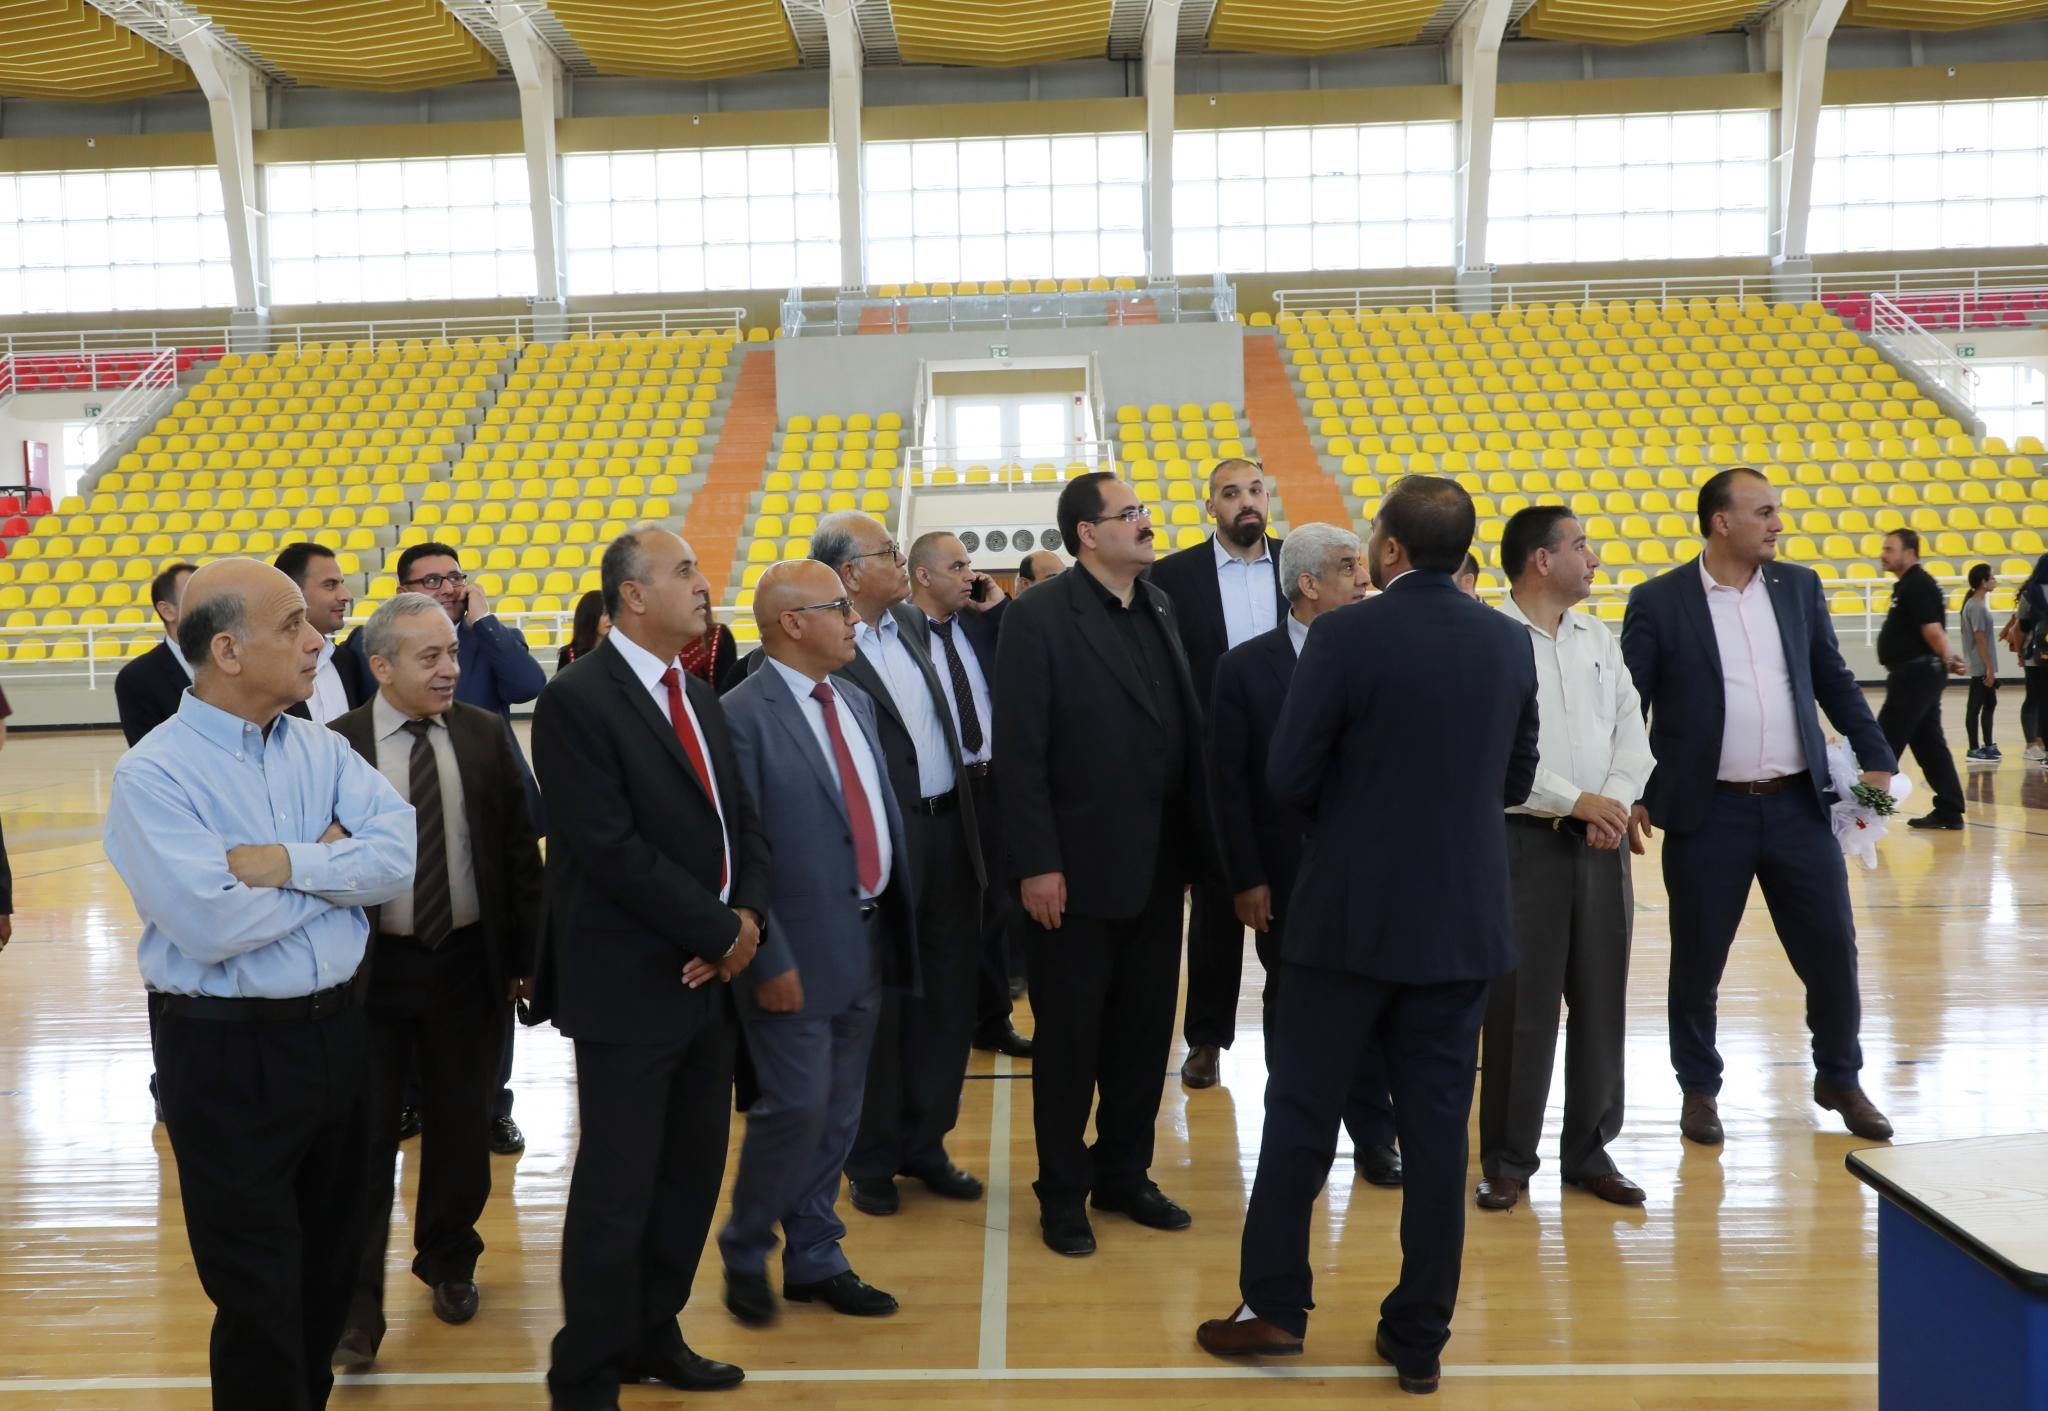 Part of the gymnasium hall opening